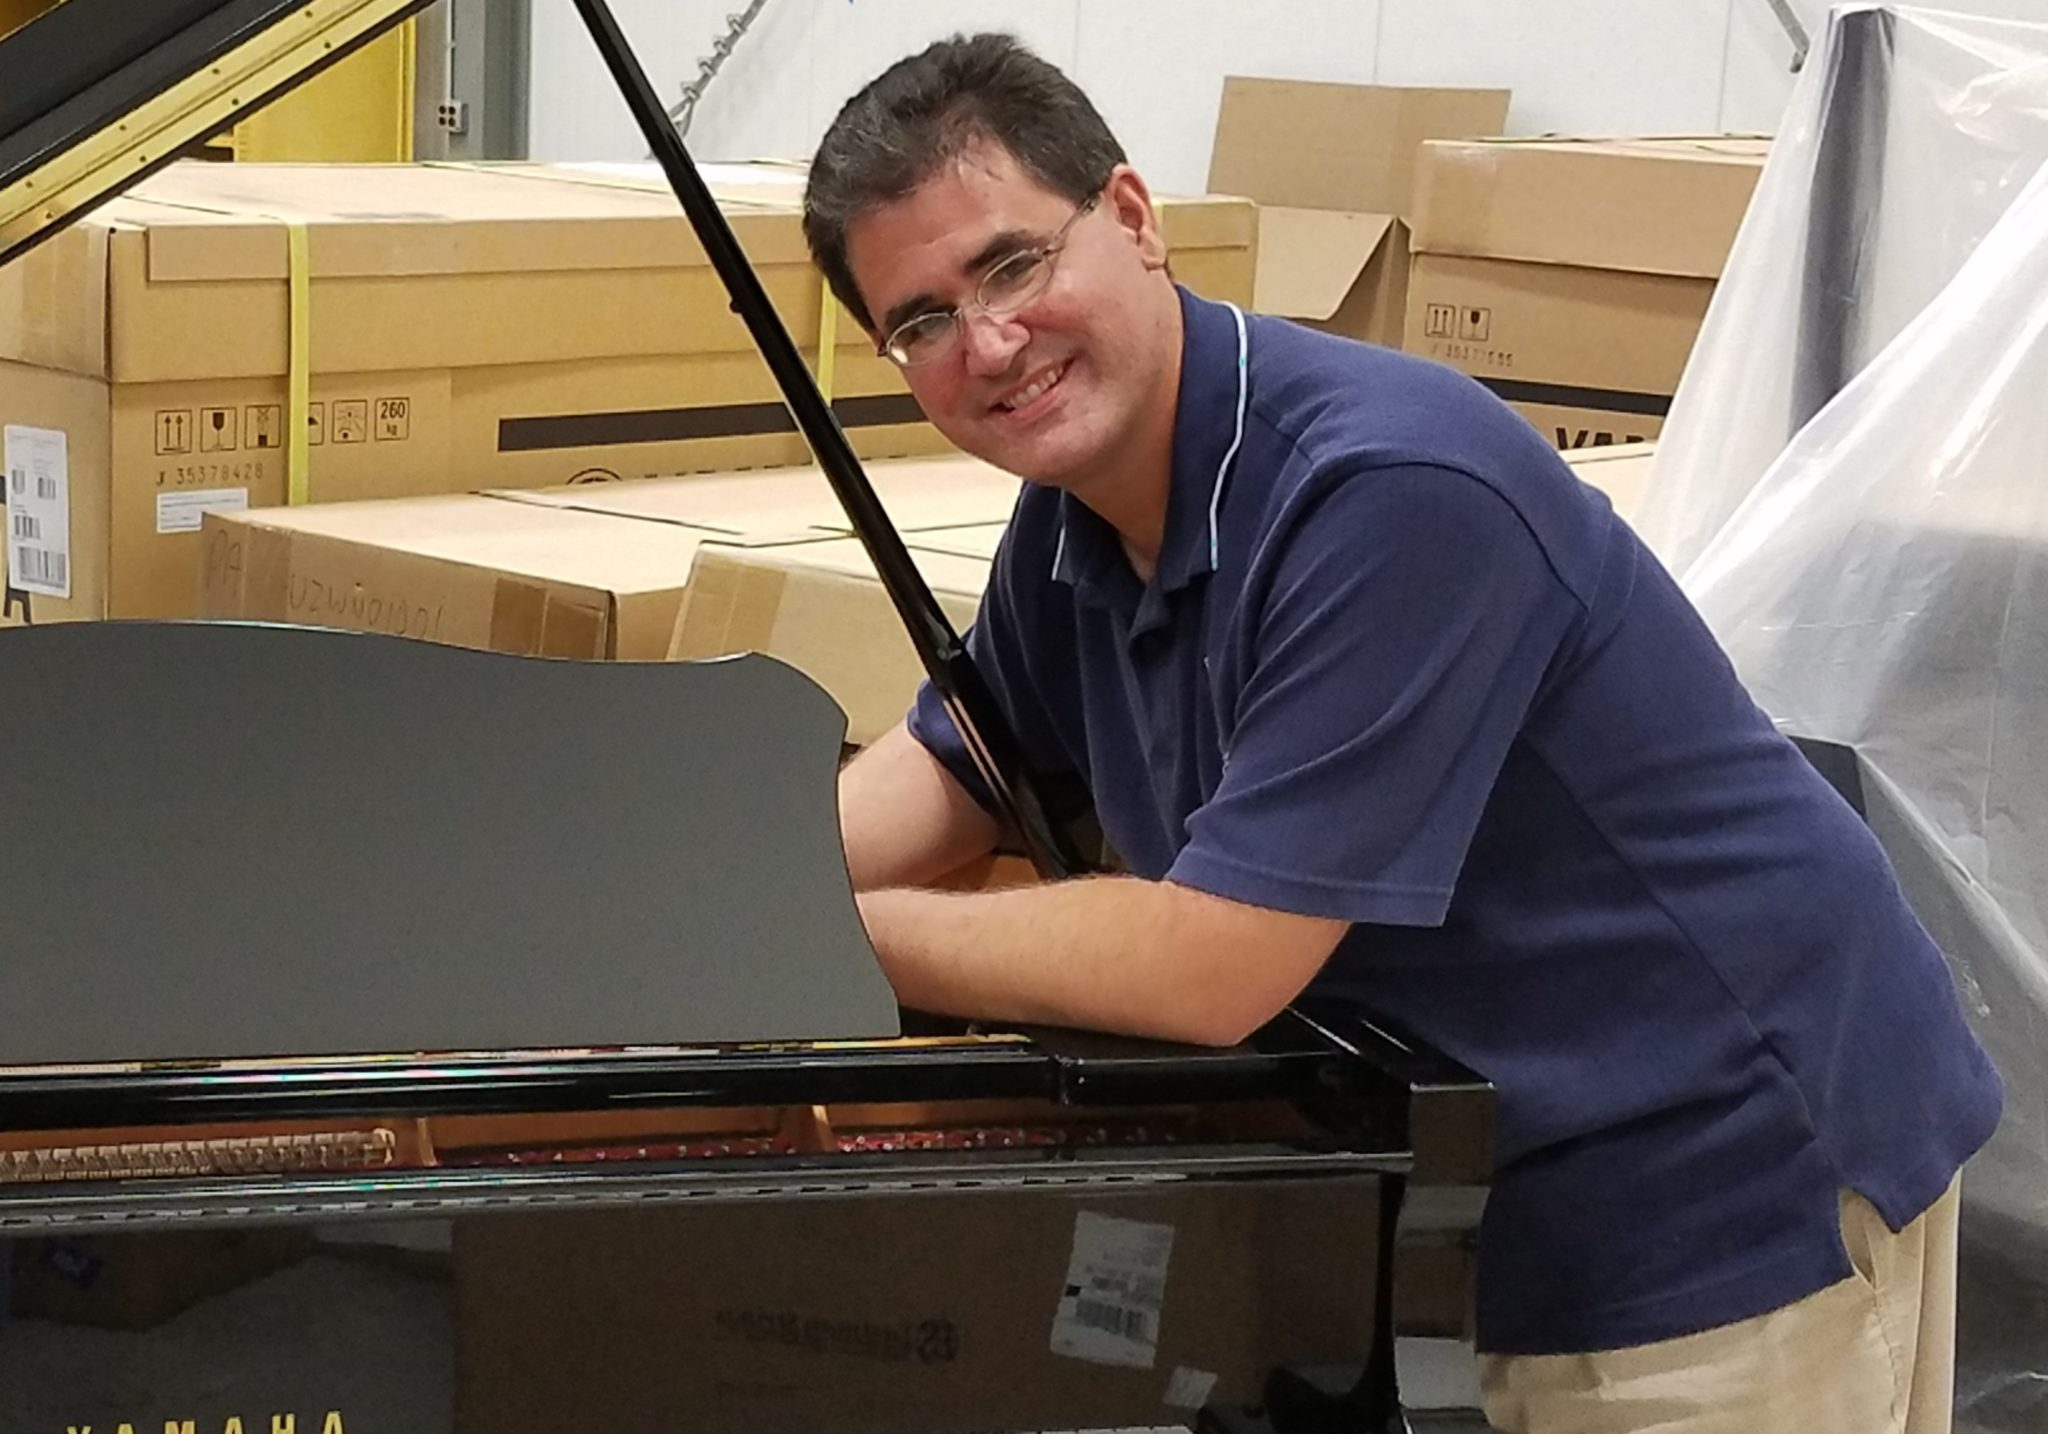 Piano repair technician tuning a grand piano with boxed pianos behind him.